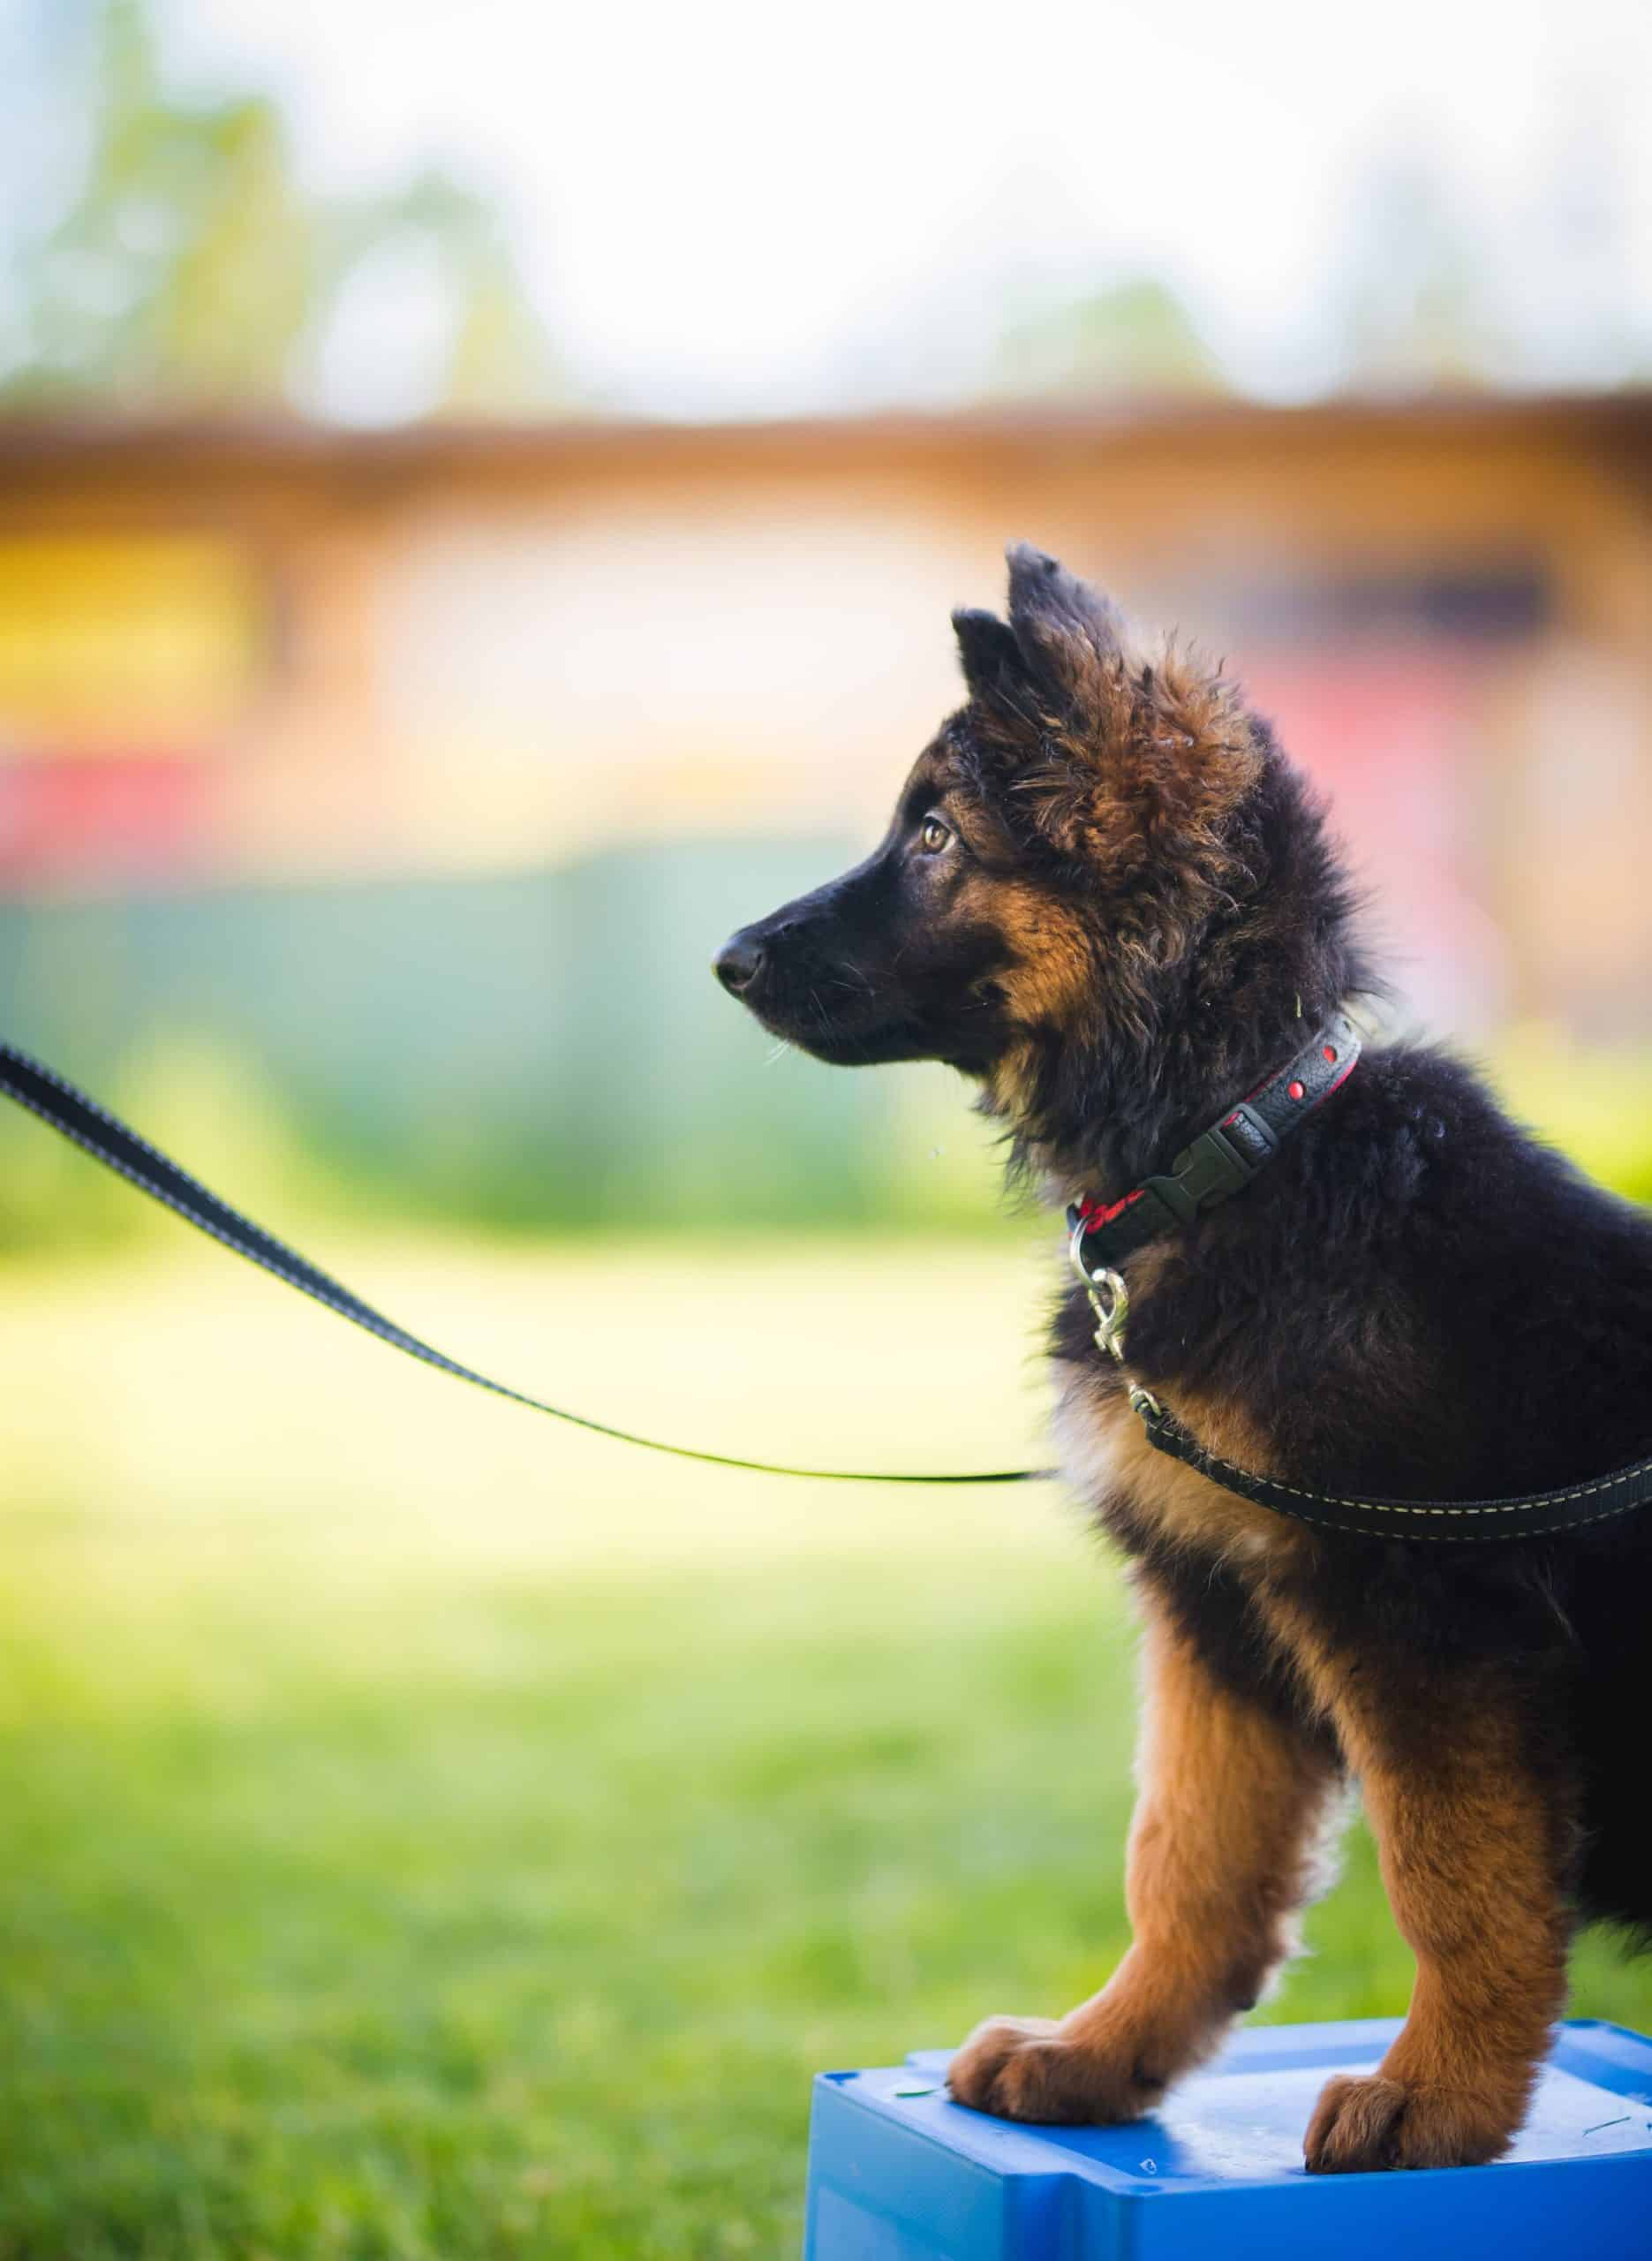 Owner trains German Shepherd puppy. Spend time with your dog either training them or walking them to help them reduce excess energy and aggression.